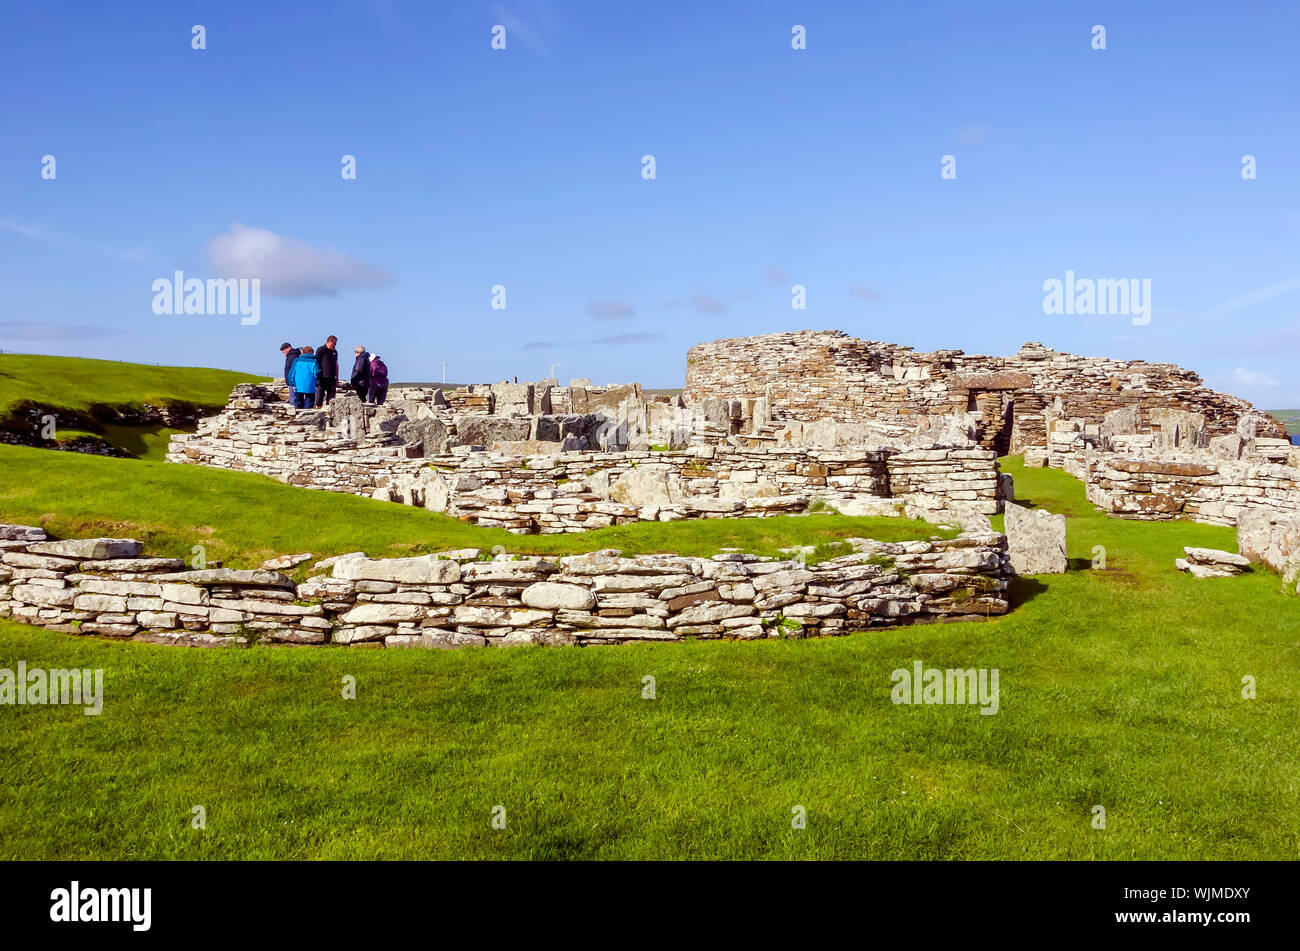 Broch of Gurness flanked by earth banks reinforced by stone. The broch village ruins surround it. Stock Photo